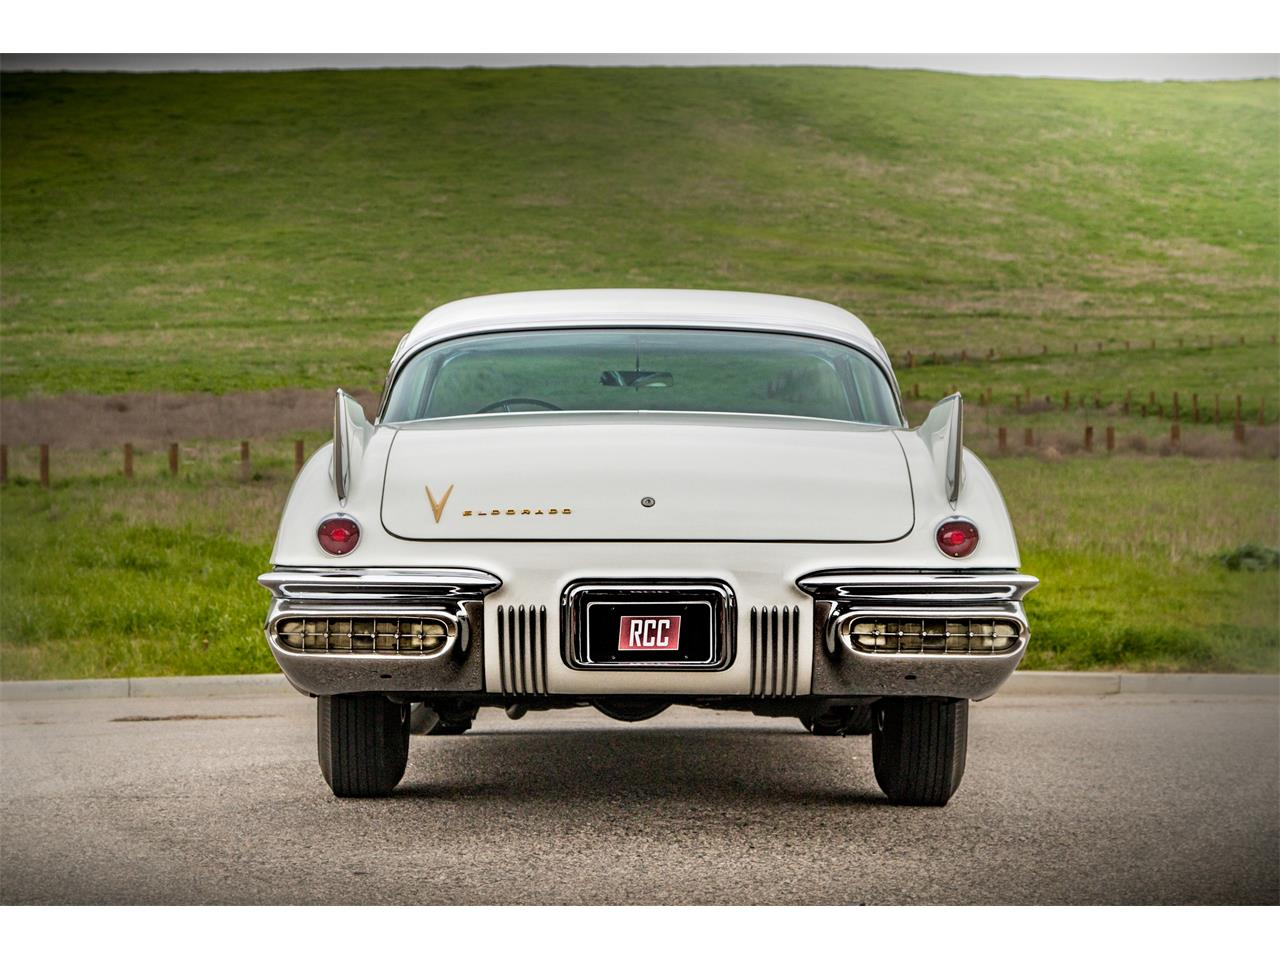 Large Picture of Classic '58 Cadillac Eldorado located in California Offered by Radwan Classic Cars - P4QT